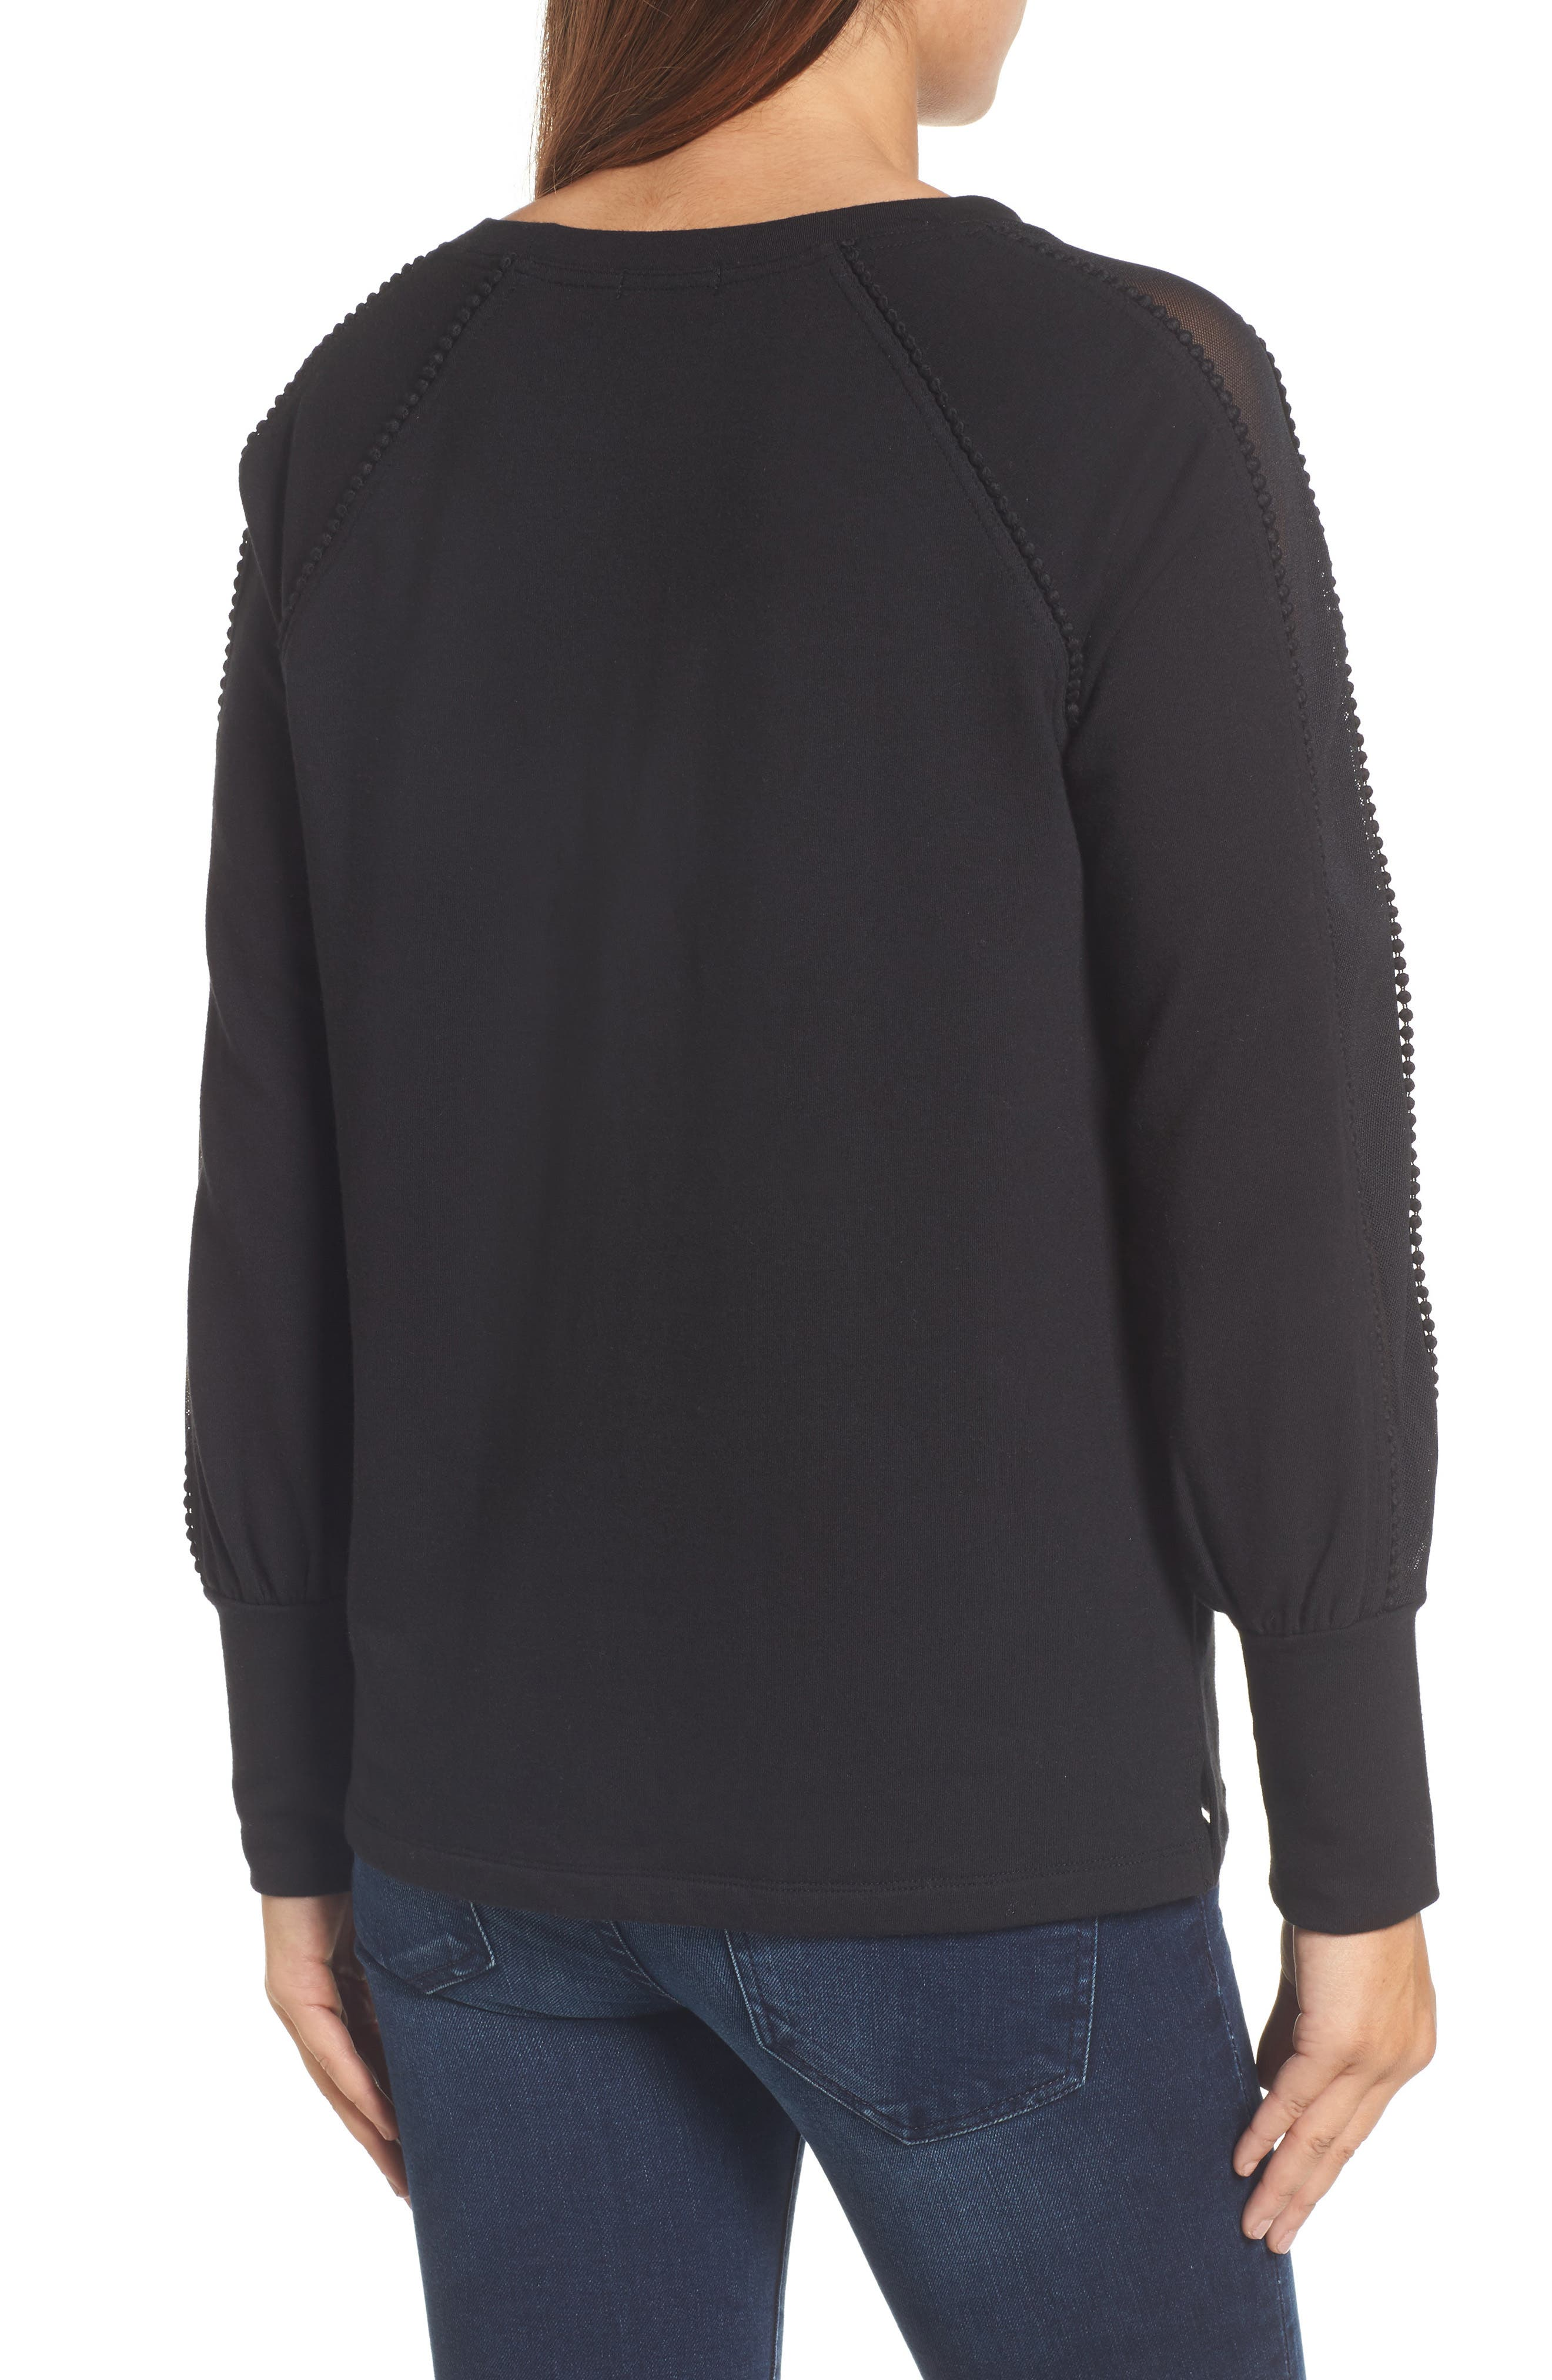 Mesh Inset Sleeve Sweatshirt,                             Alternate thumbnail 2, color,                             Black